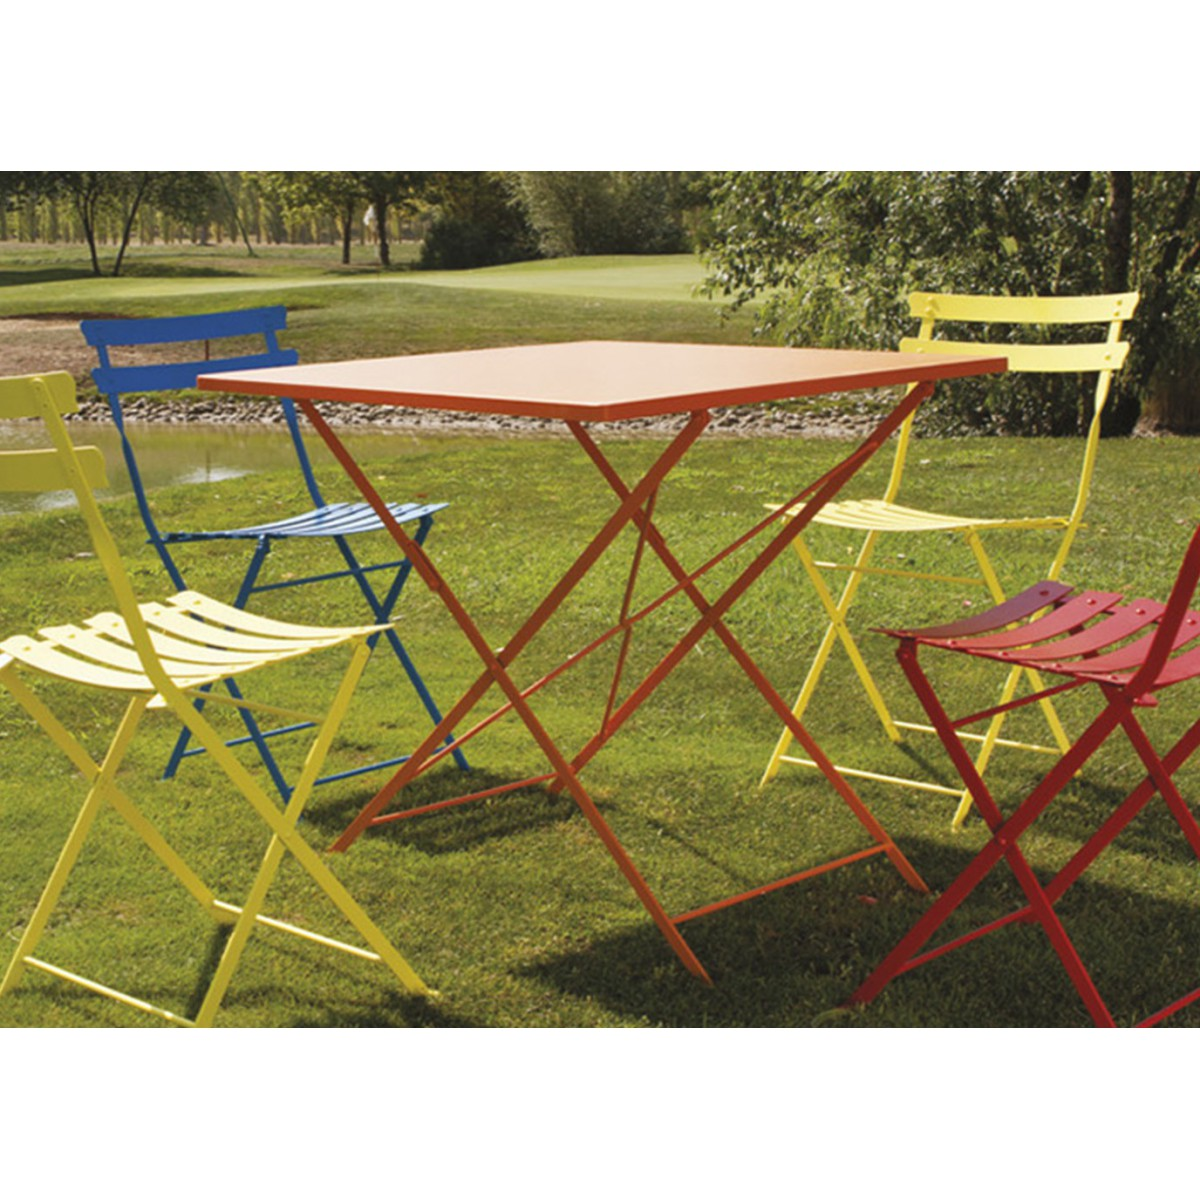 Table Terrasse Pliante Table Terrasse Pliante Table Terrasse Pliante 70 X 70 Cm